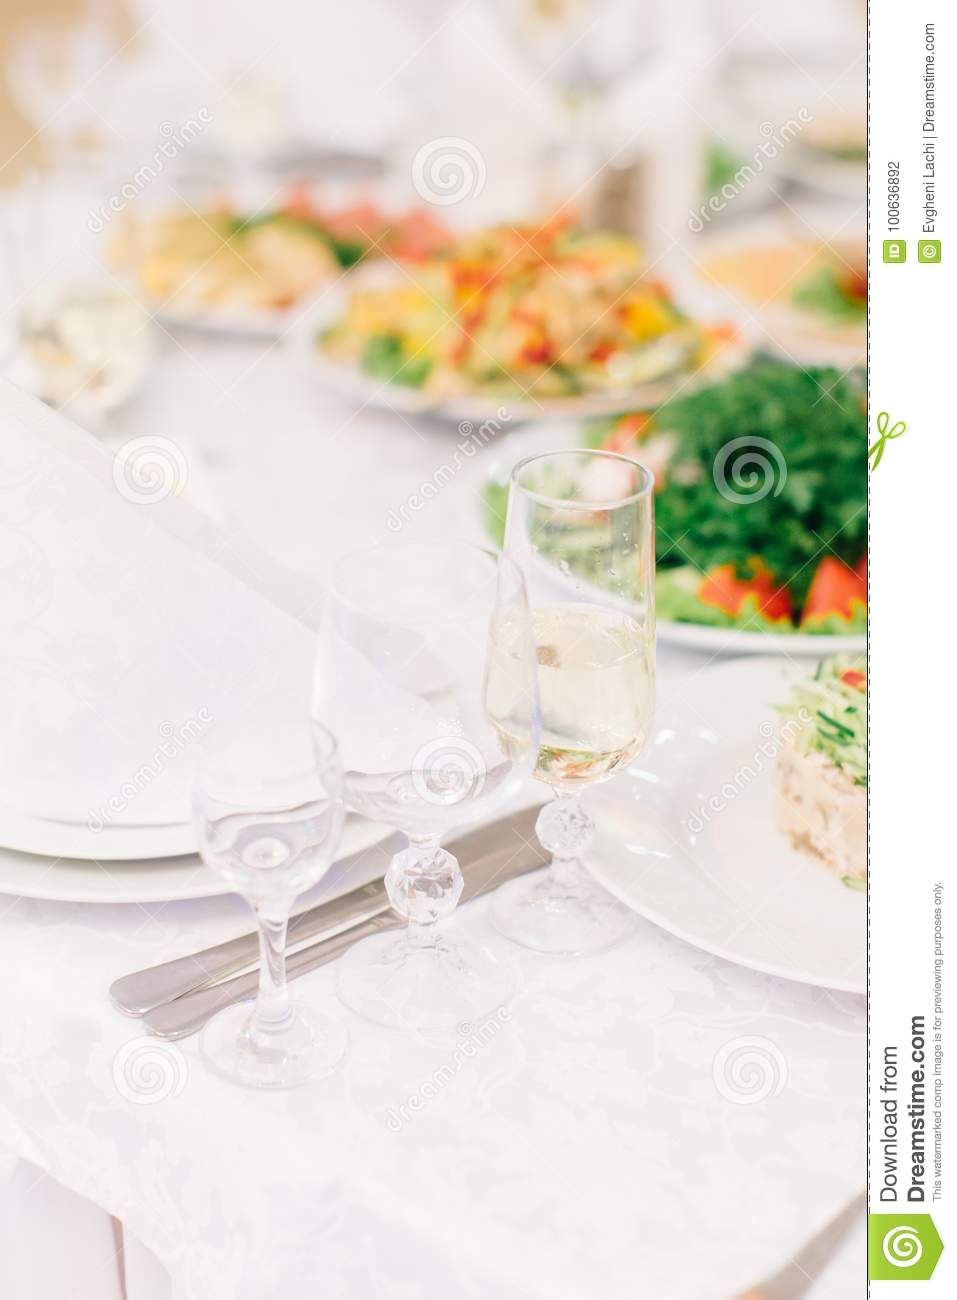 Decorated Banquet Table Setting Stock Photo Image Of Dine - Catering table setting